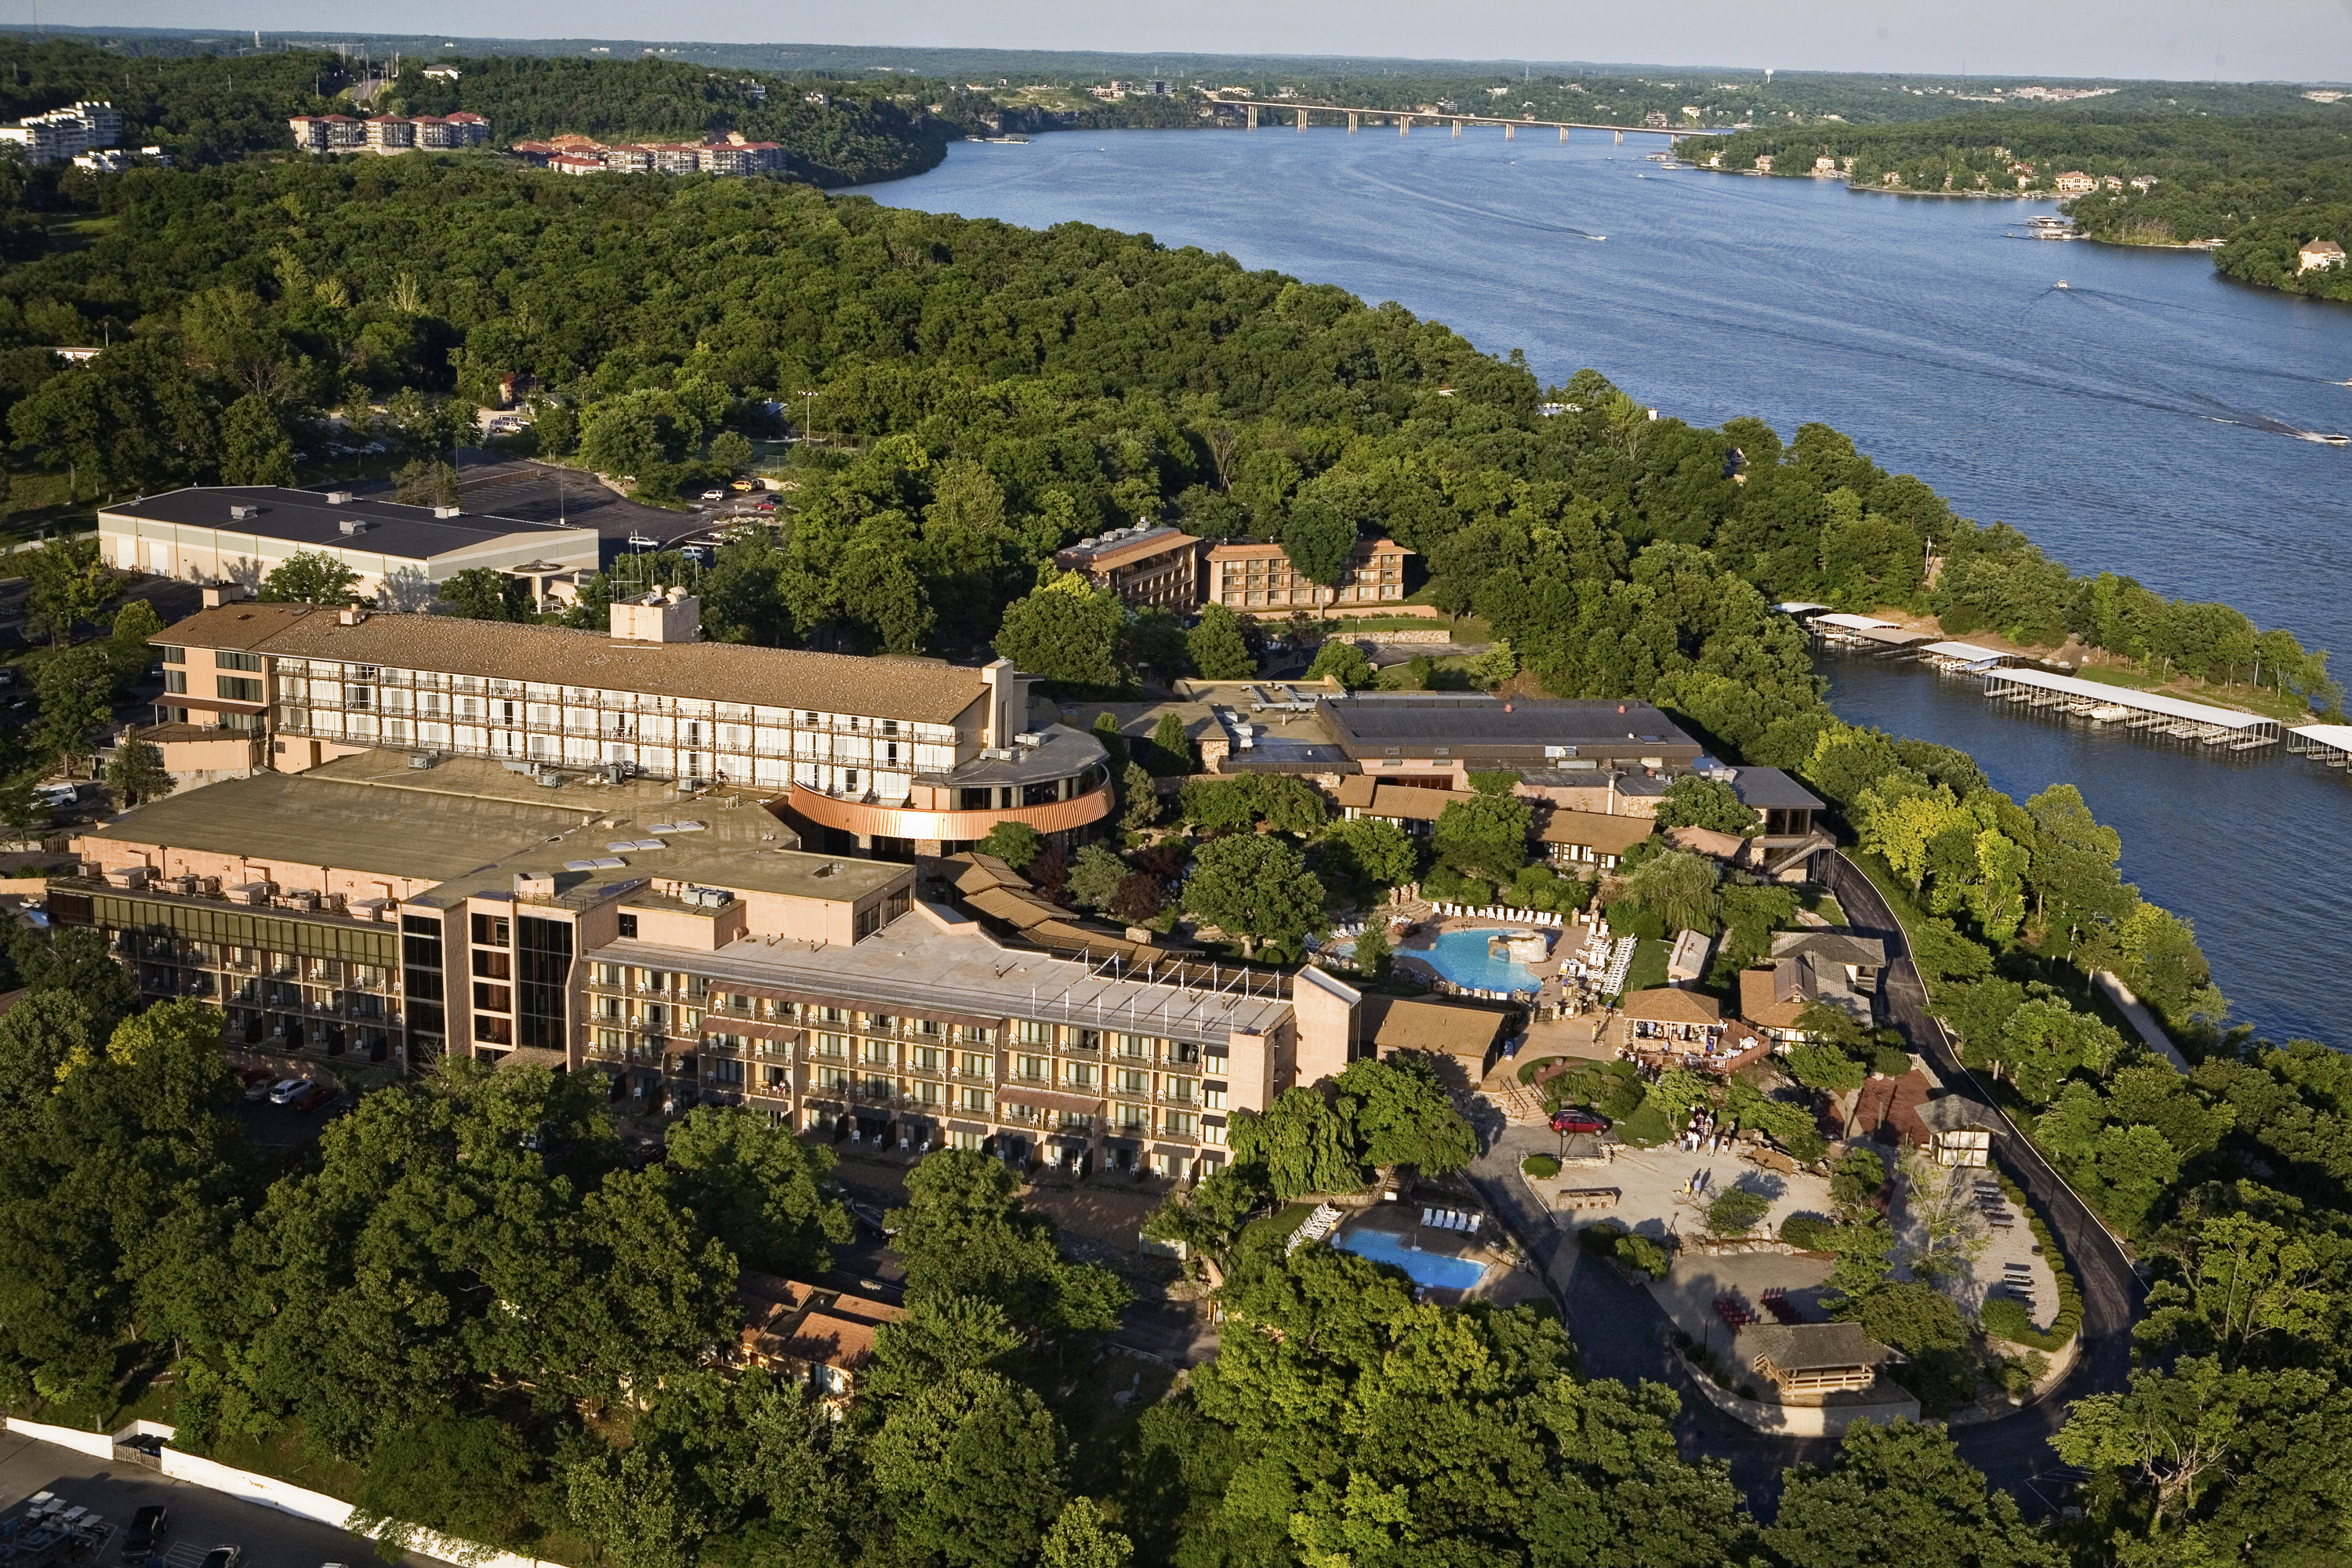 The Lodge of Four Seasons Golf Resort  Spa  Lake of the